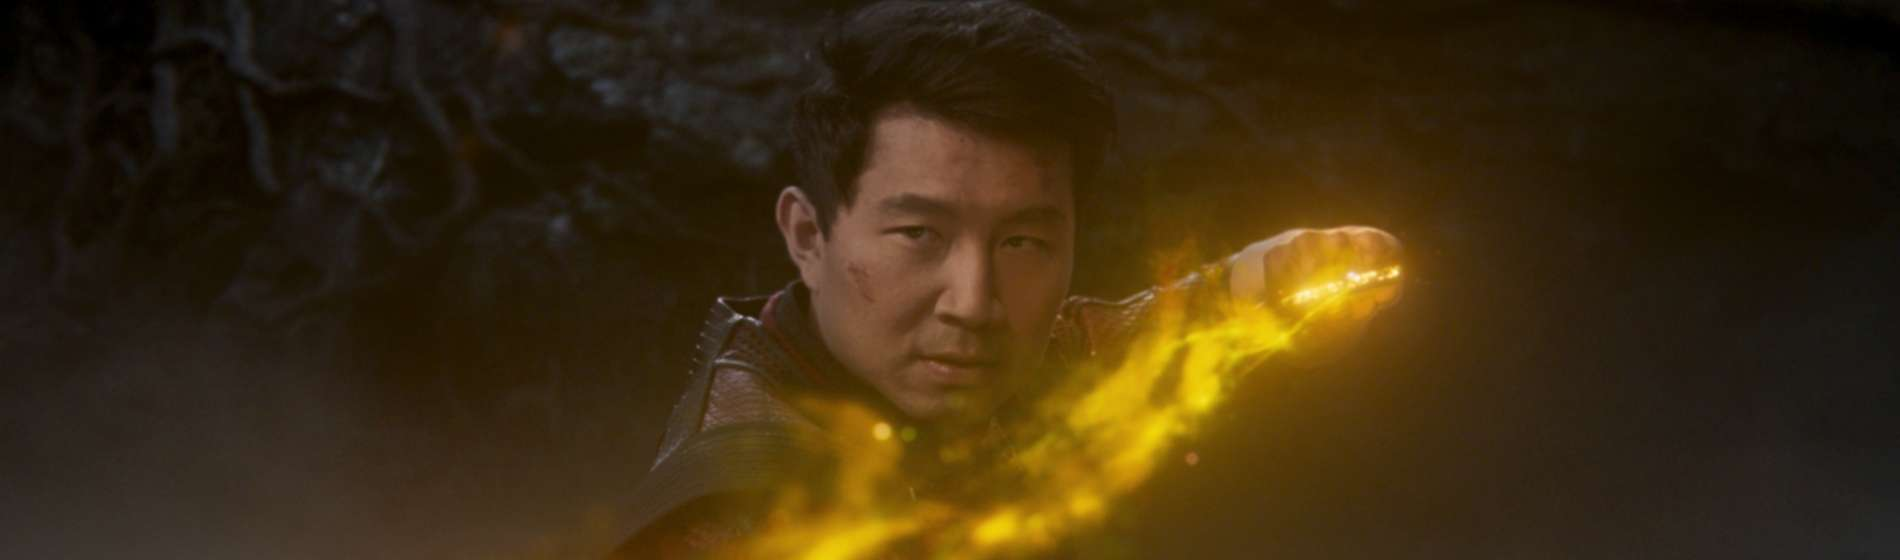 Marvel Shang-Chi and the legend of the ten rings trailer